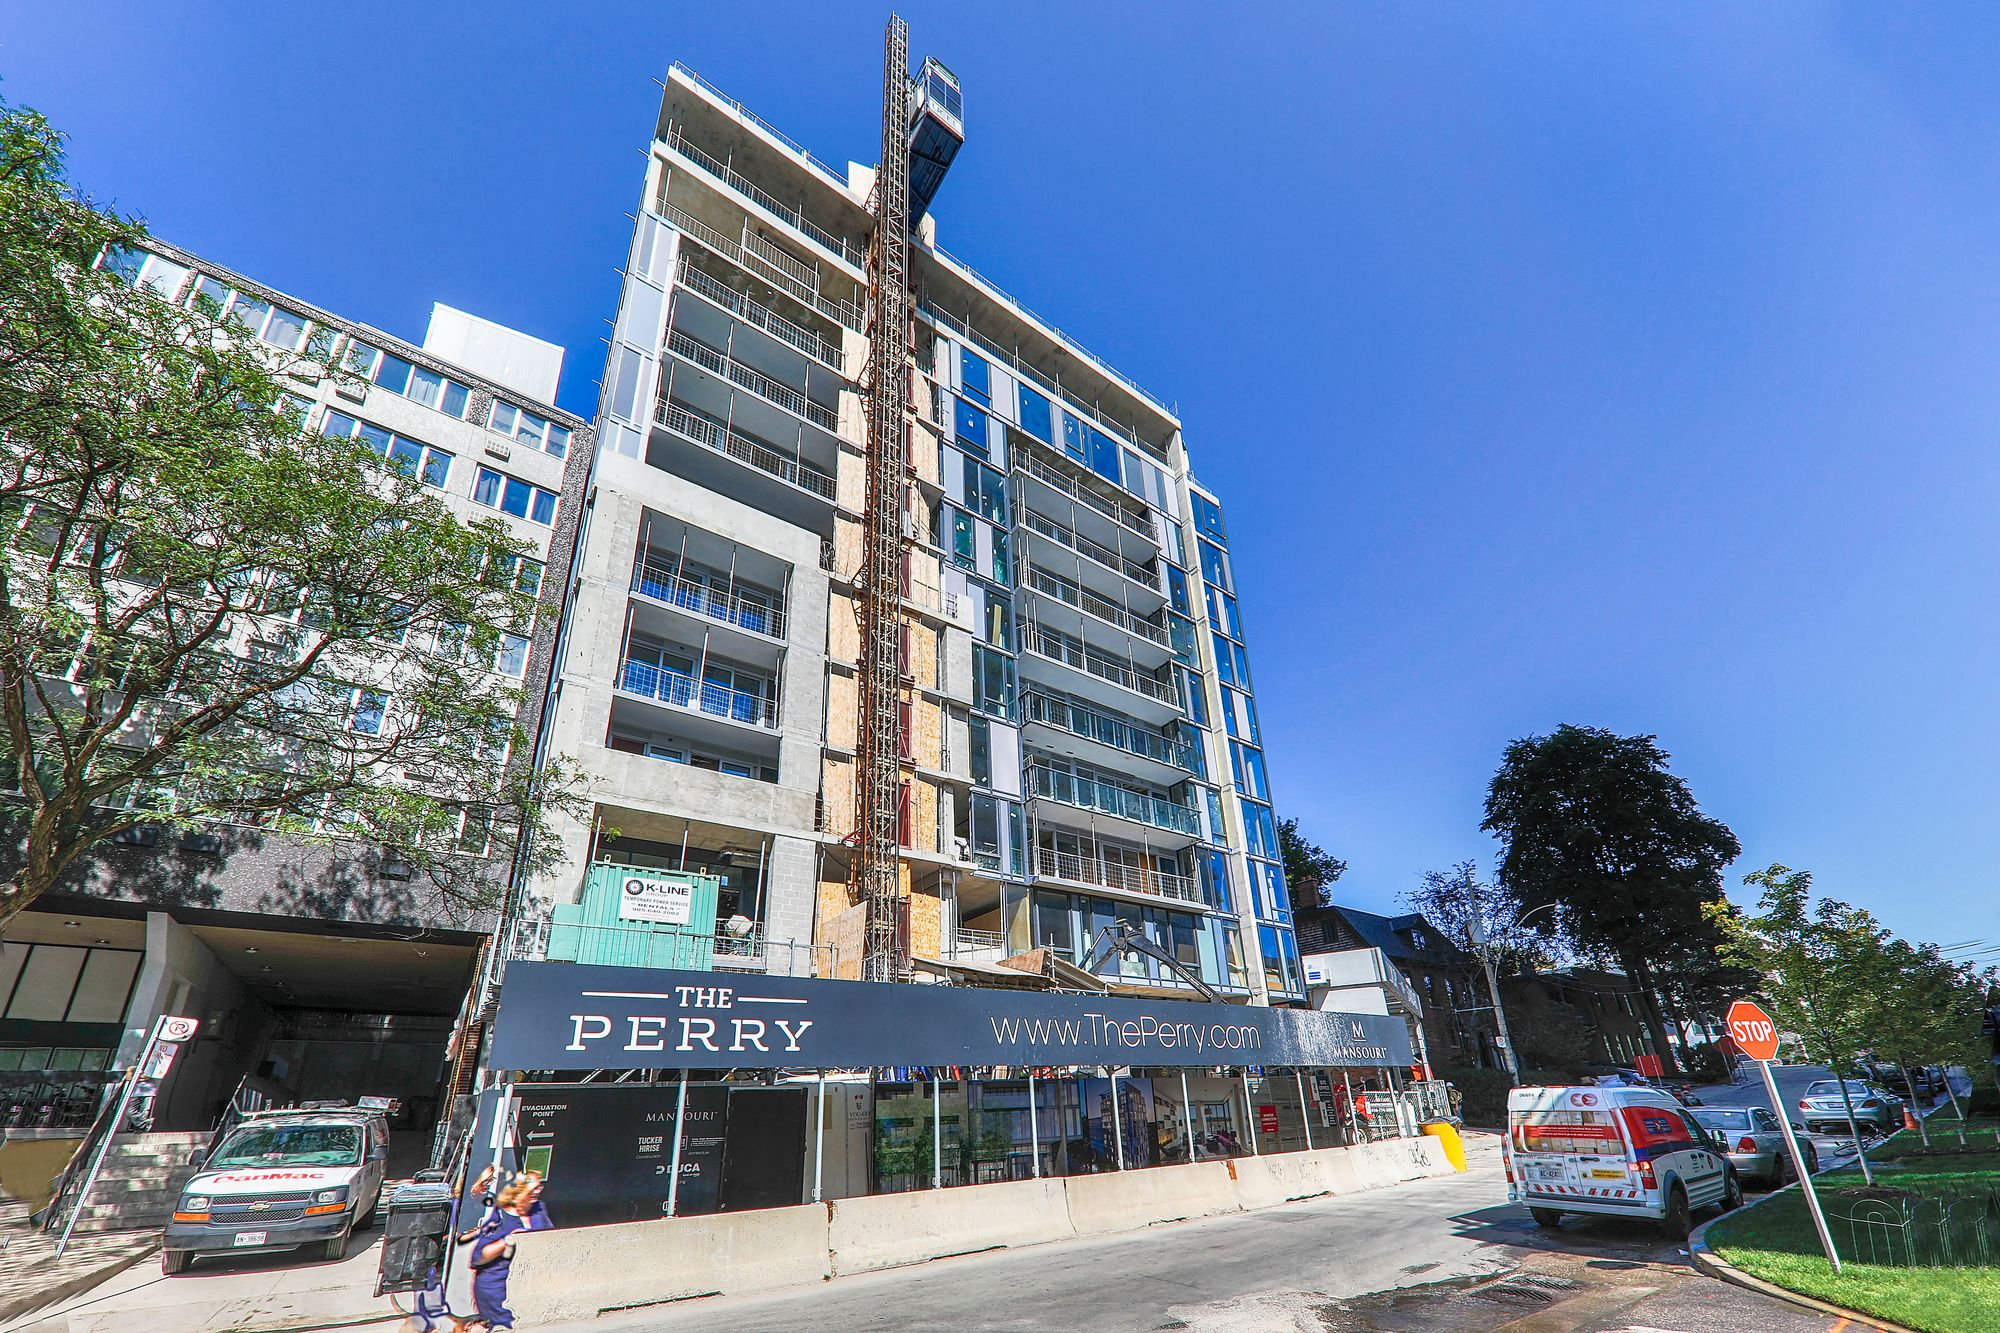 The Perry at 128 Pears Ave. This condo is located in  Downtown, Toronto - image #1 of 2 by Strata.ca